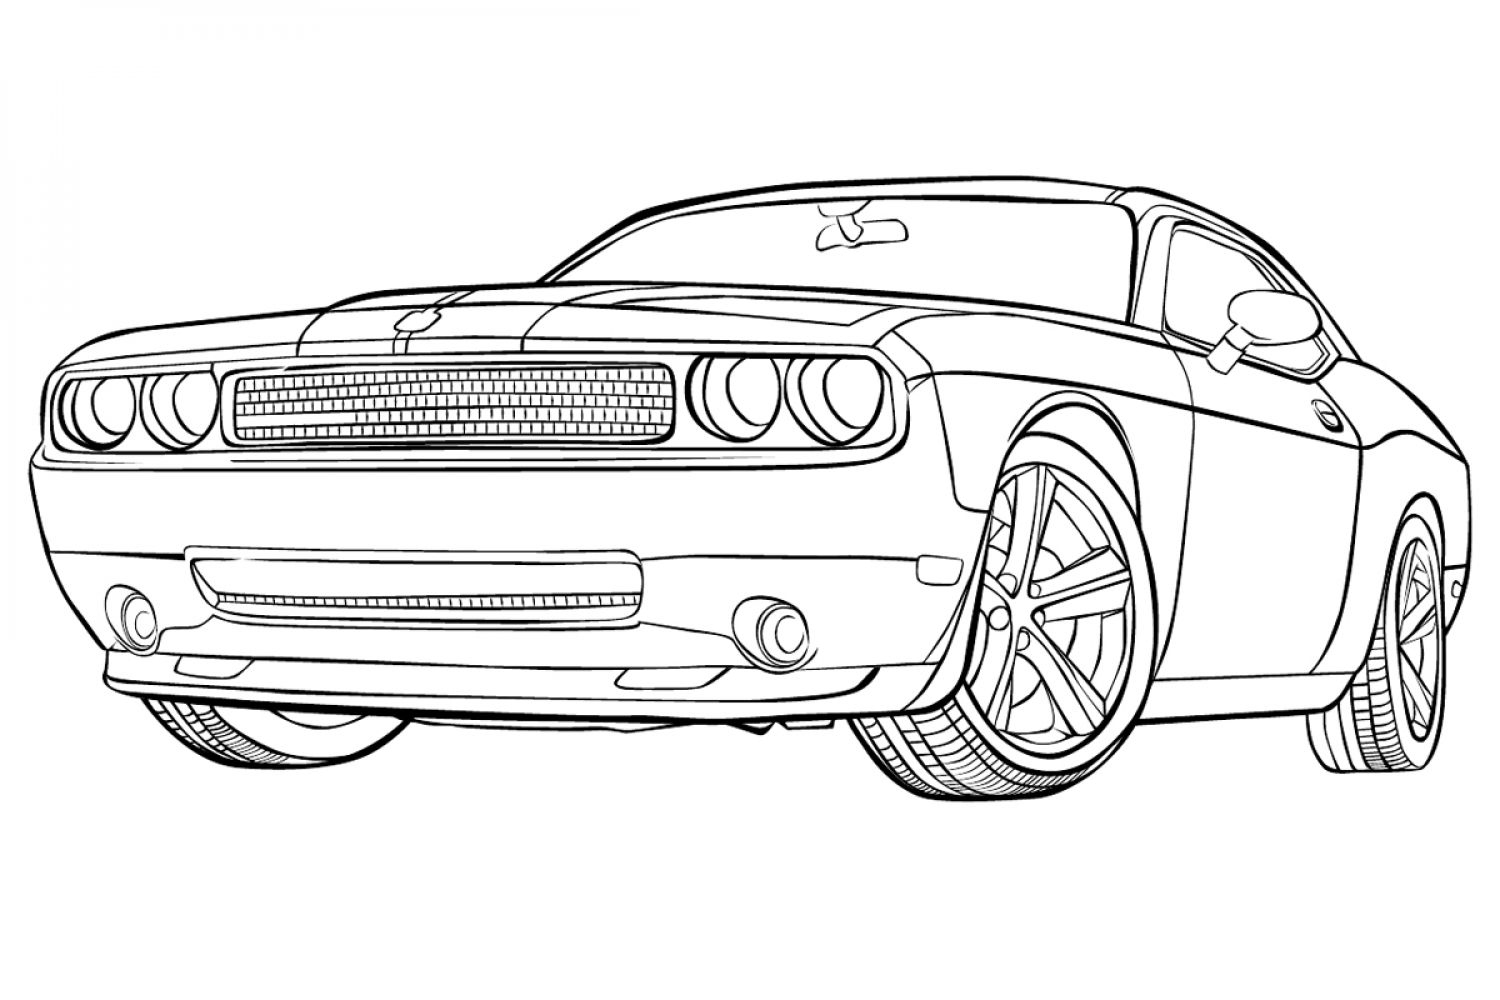 printable muscle car coloring pages muscle car coloring pages to download and print for free printable pages coloring car muscle